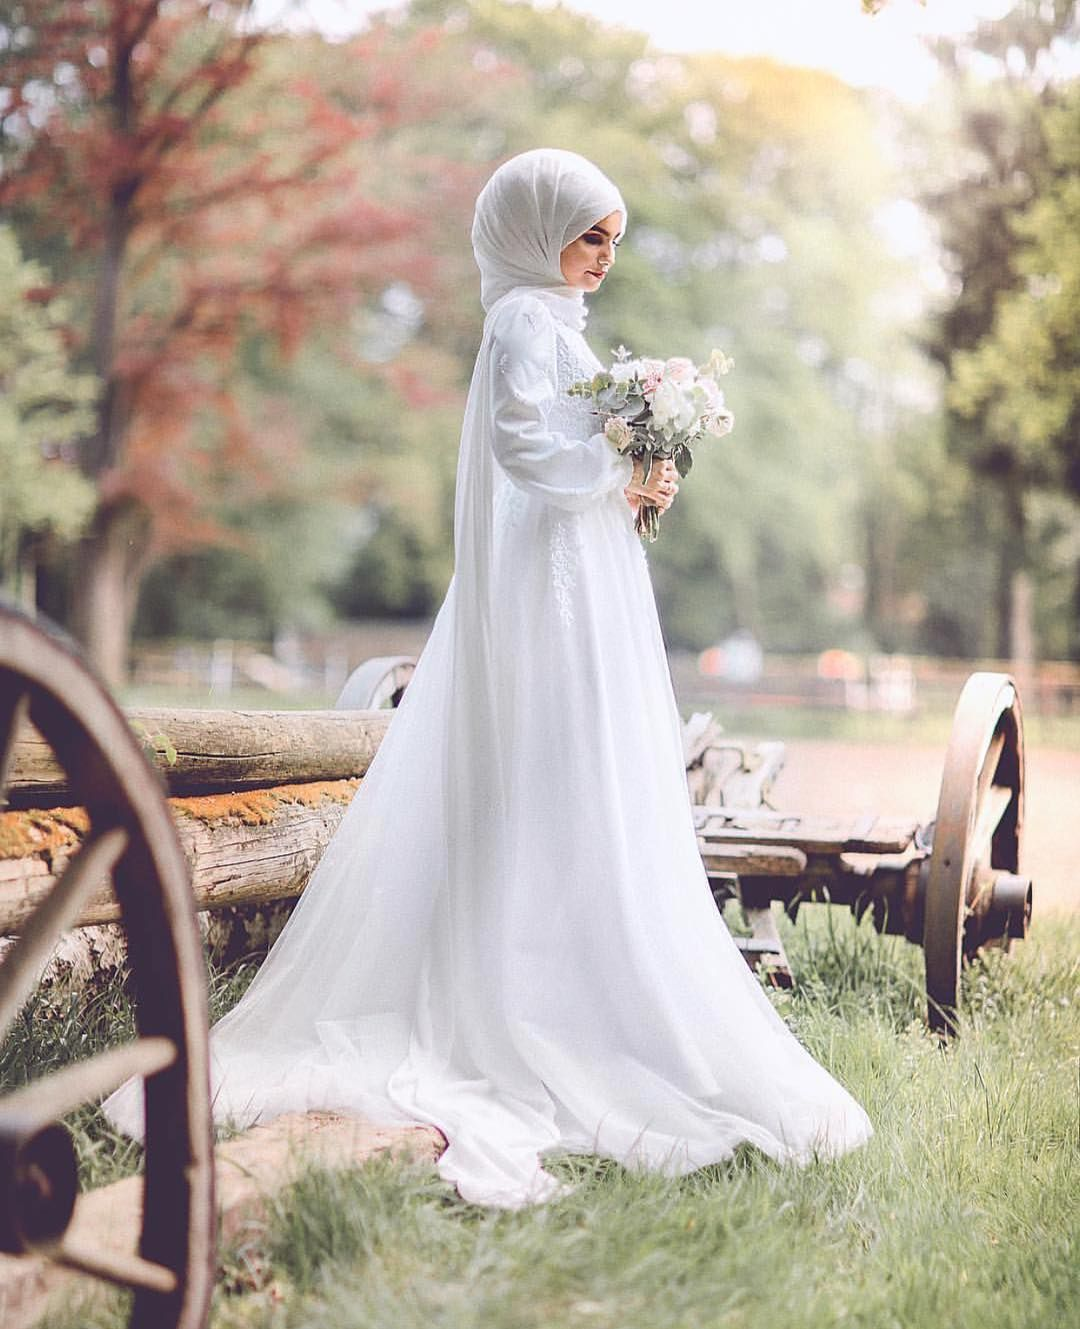 Another pic of the beautiful yaseminkaradagphotography in her civil